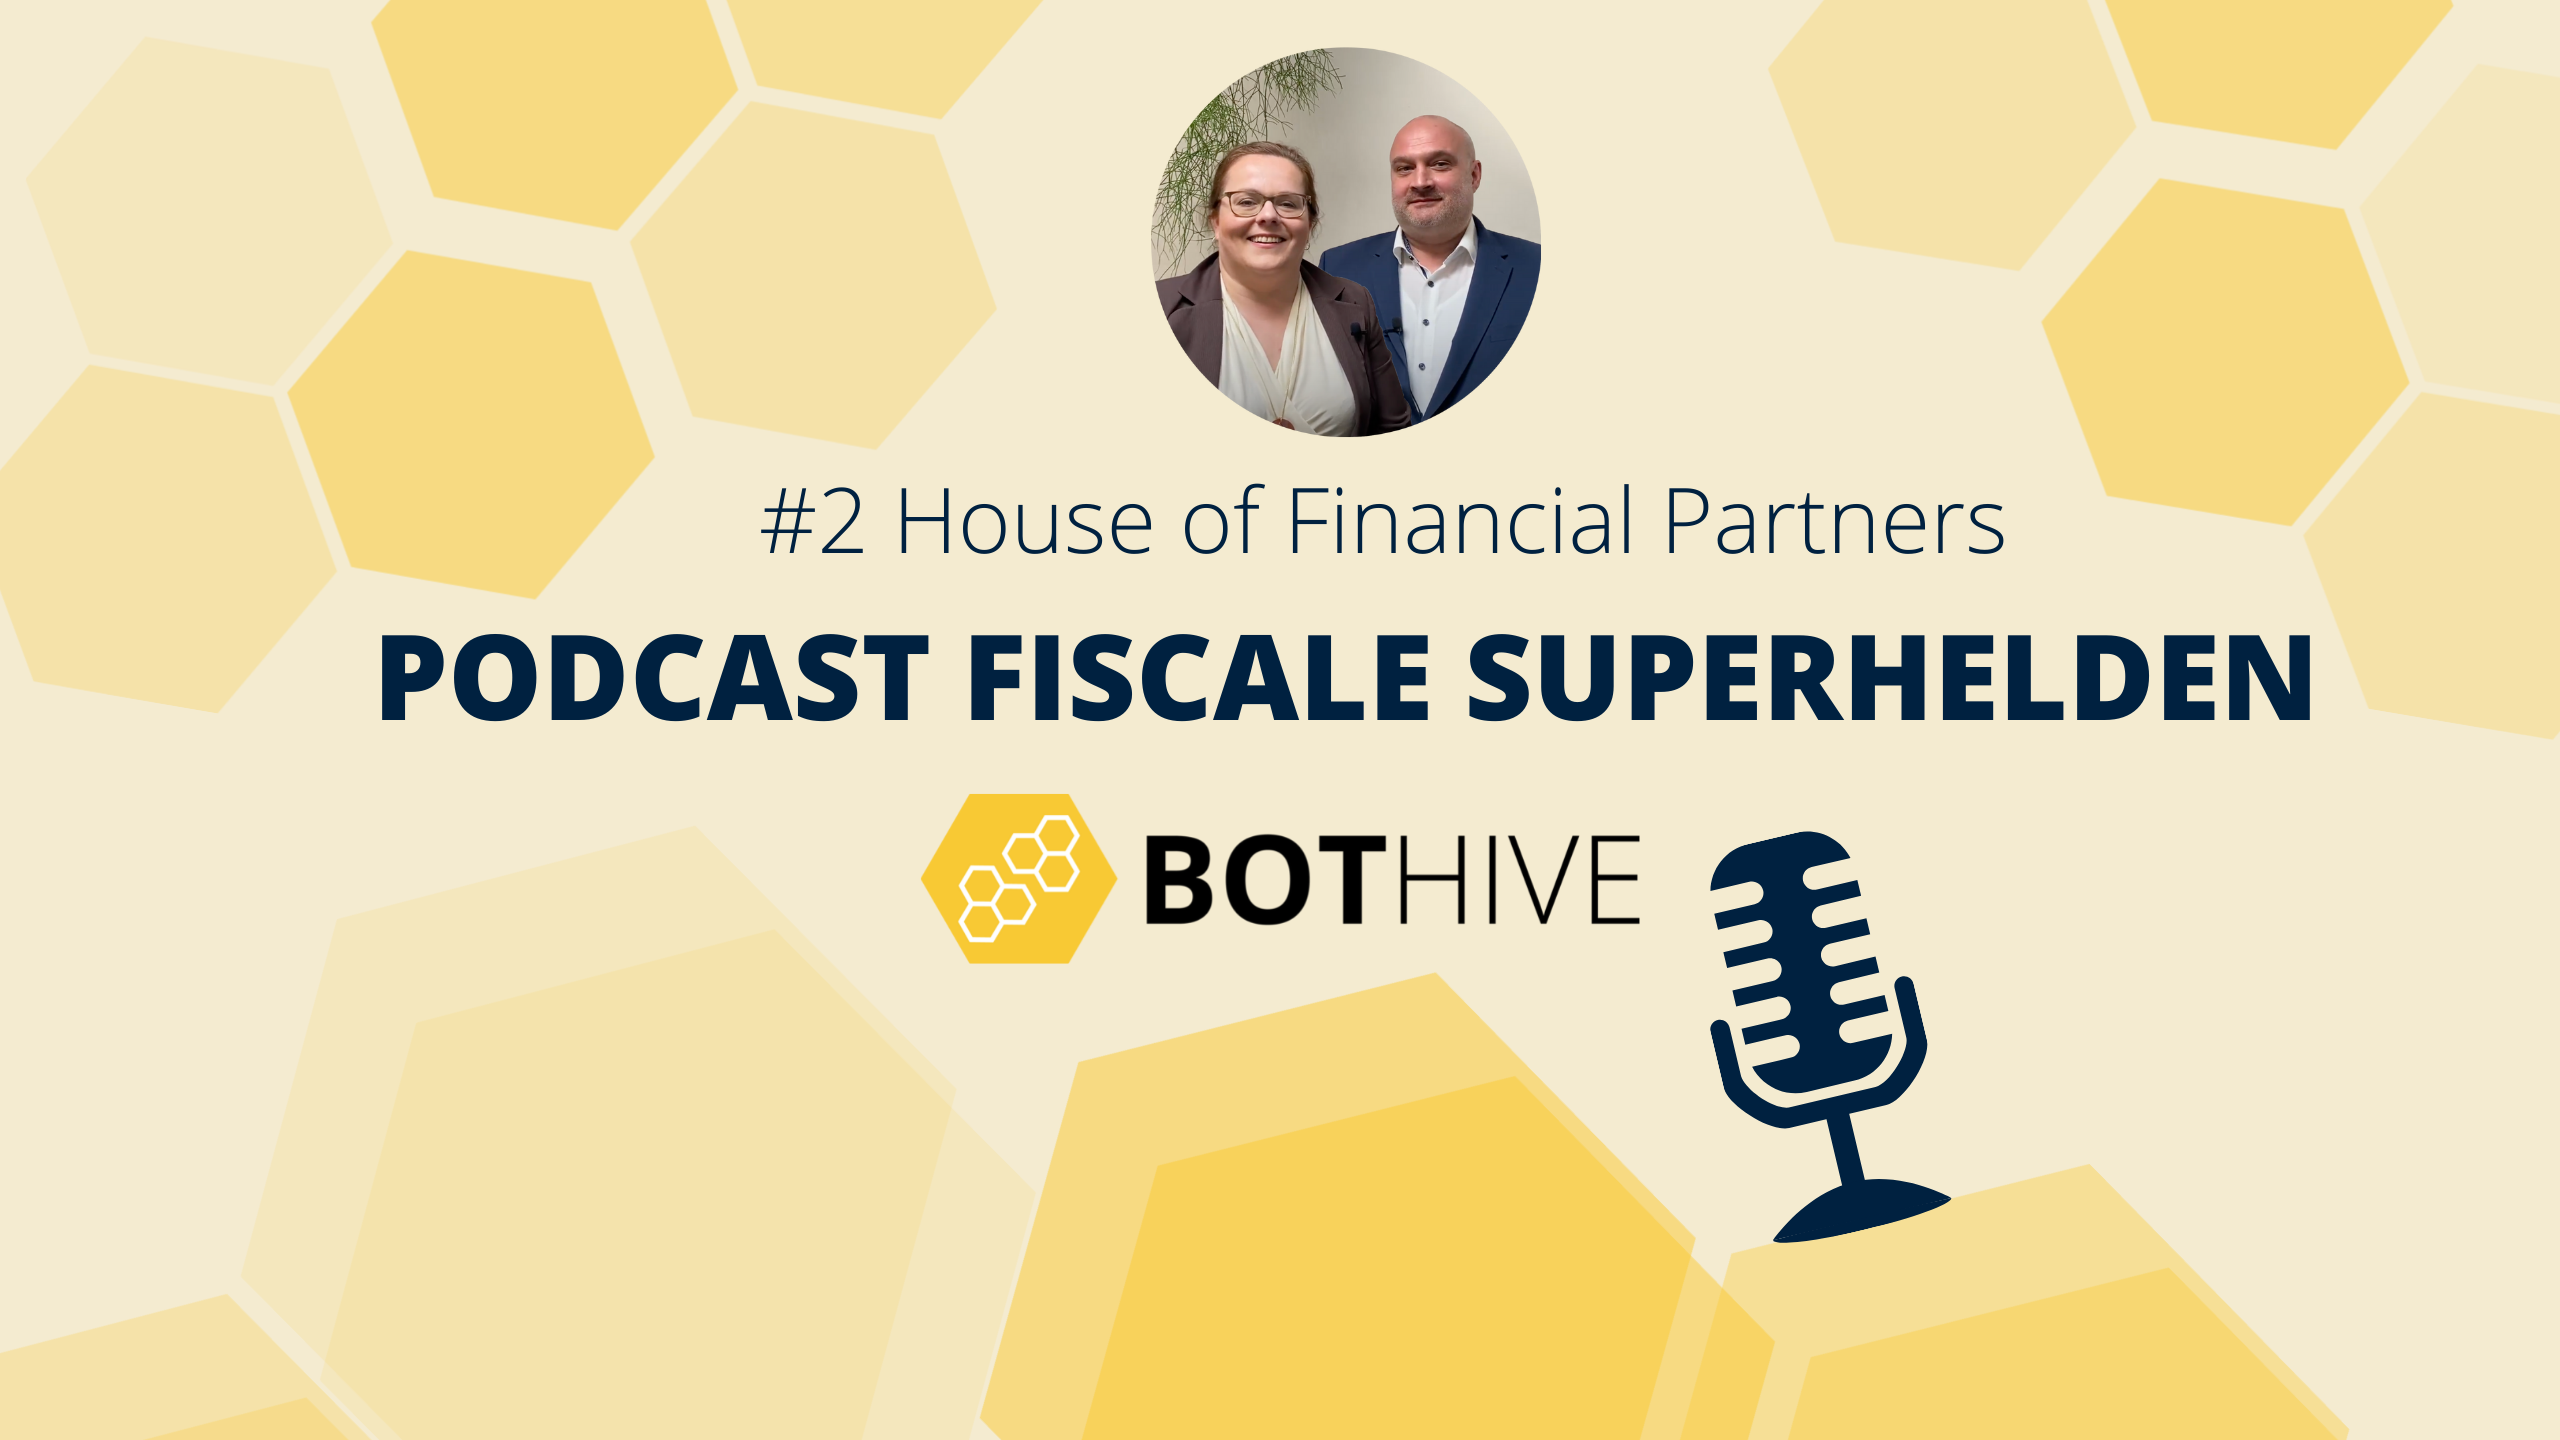 Bothive | #2 House of Financial Partners